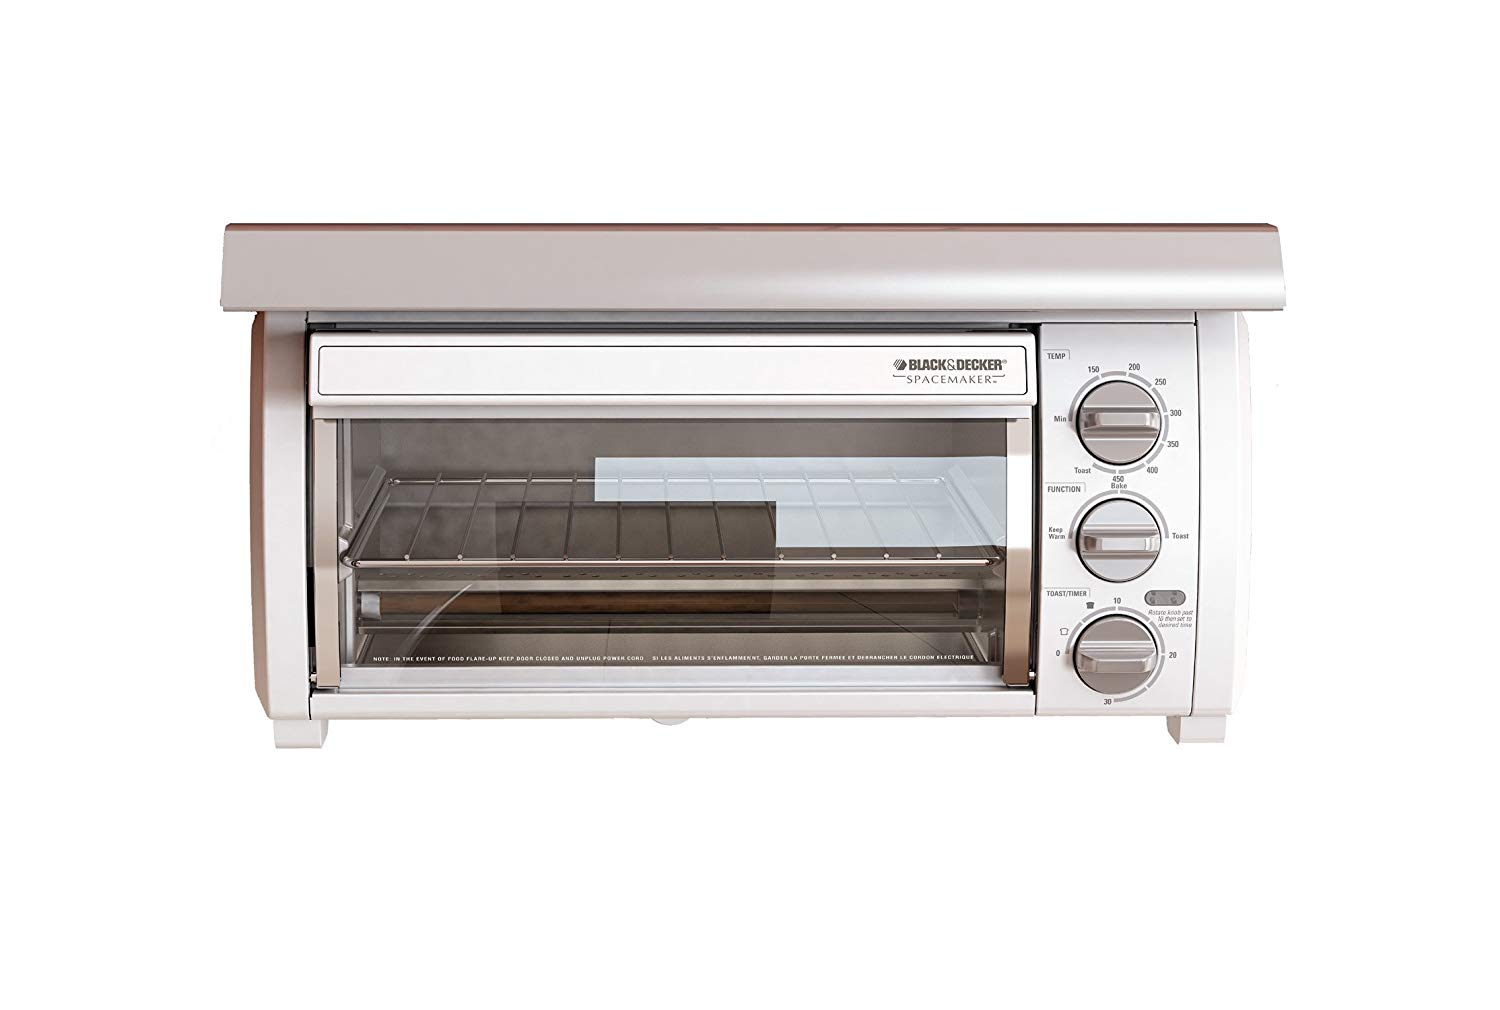 Cheap Black And Decker Spacemaker Toaster Oven Parts Find